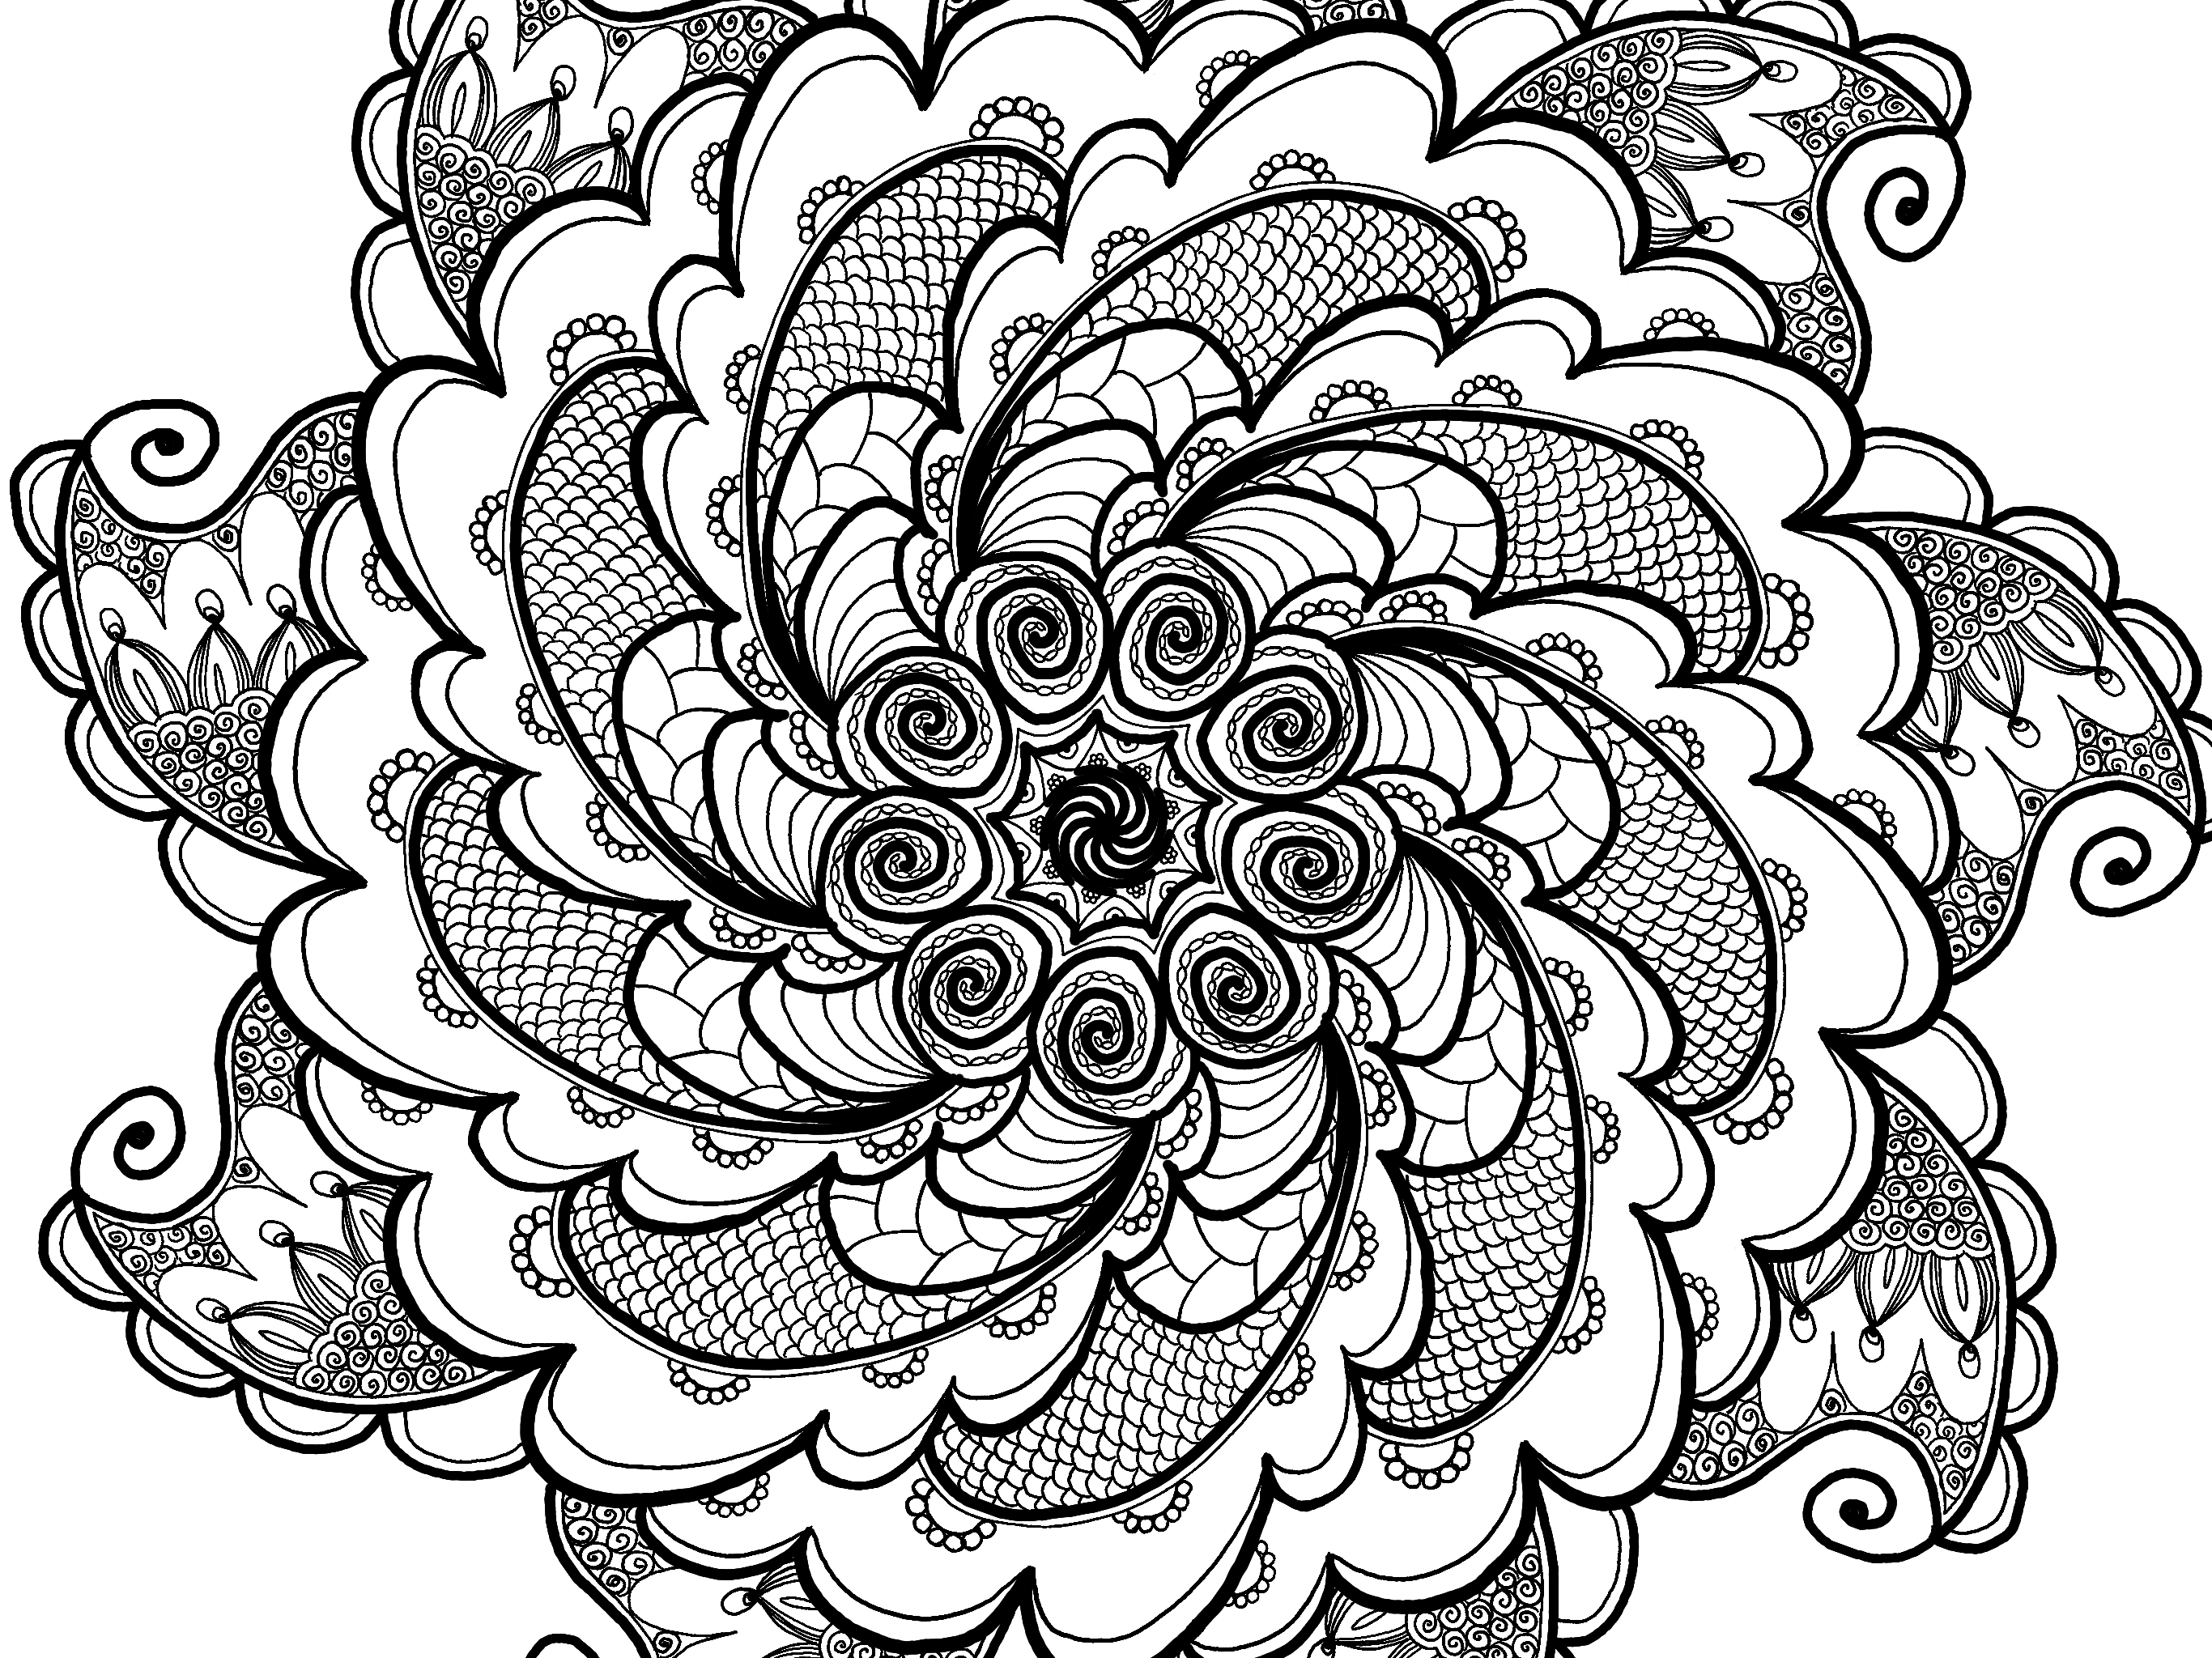 creative coloring pages for teens - photo#8